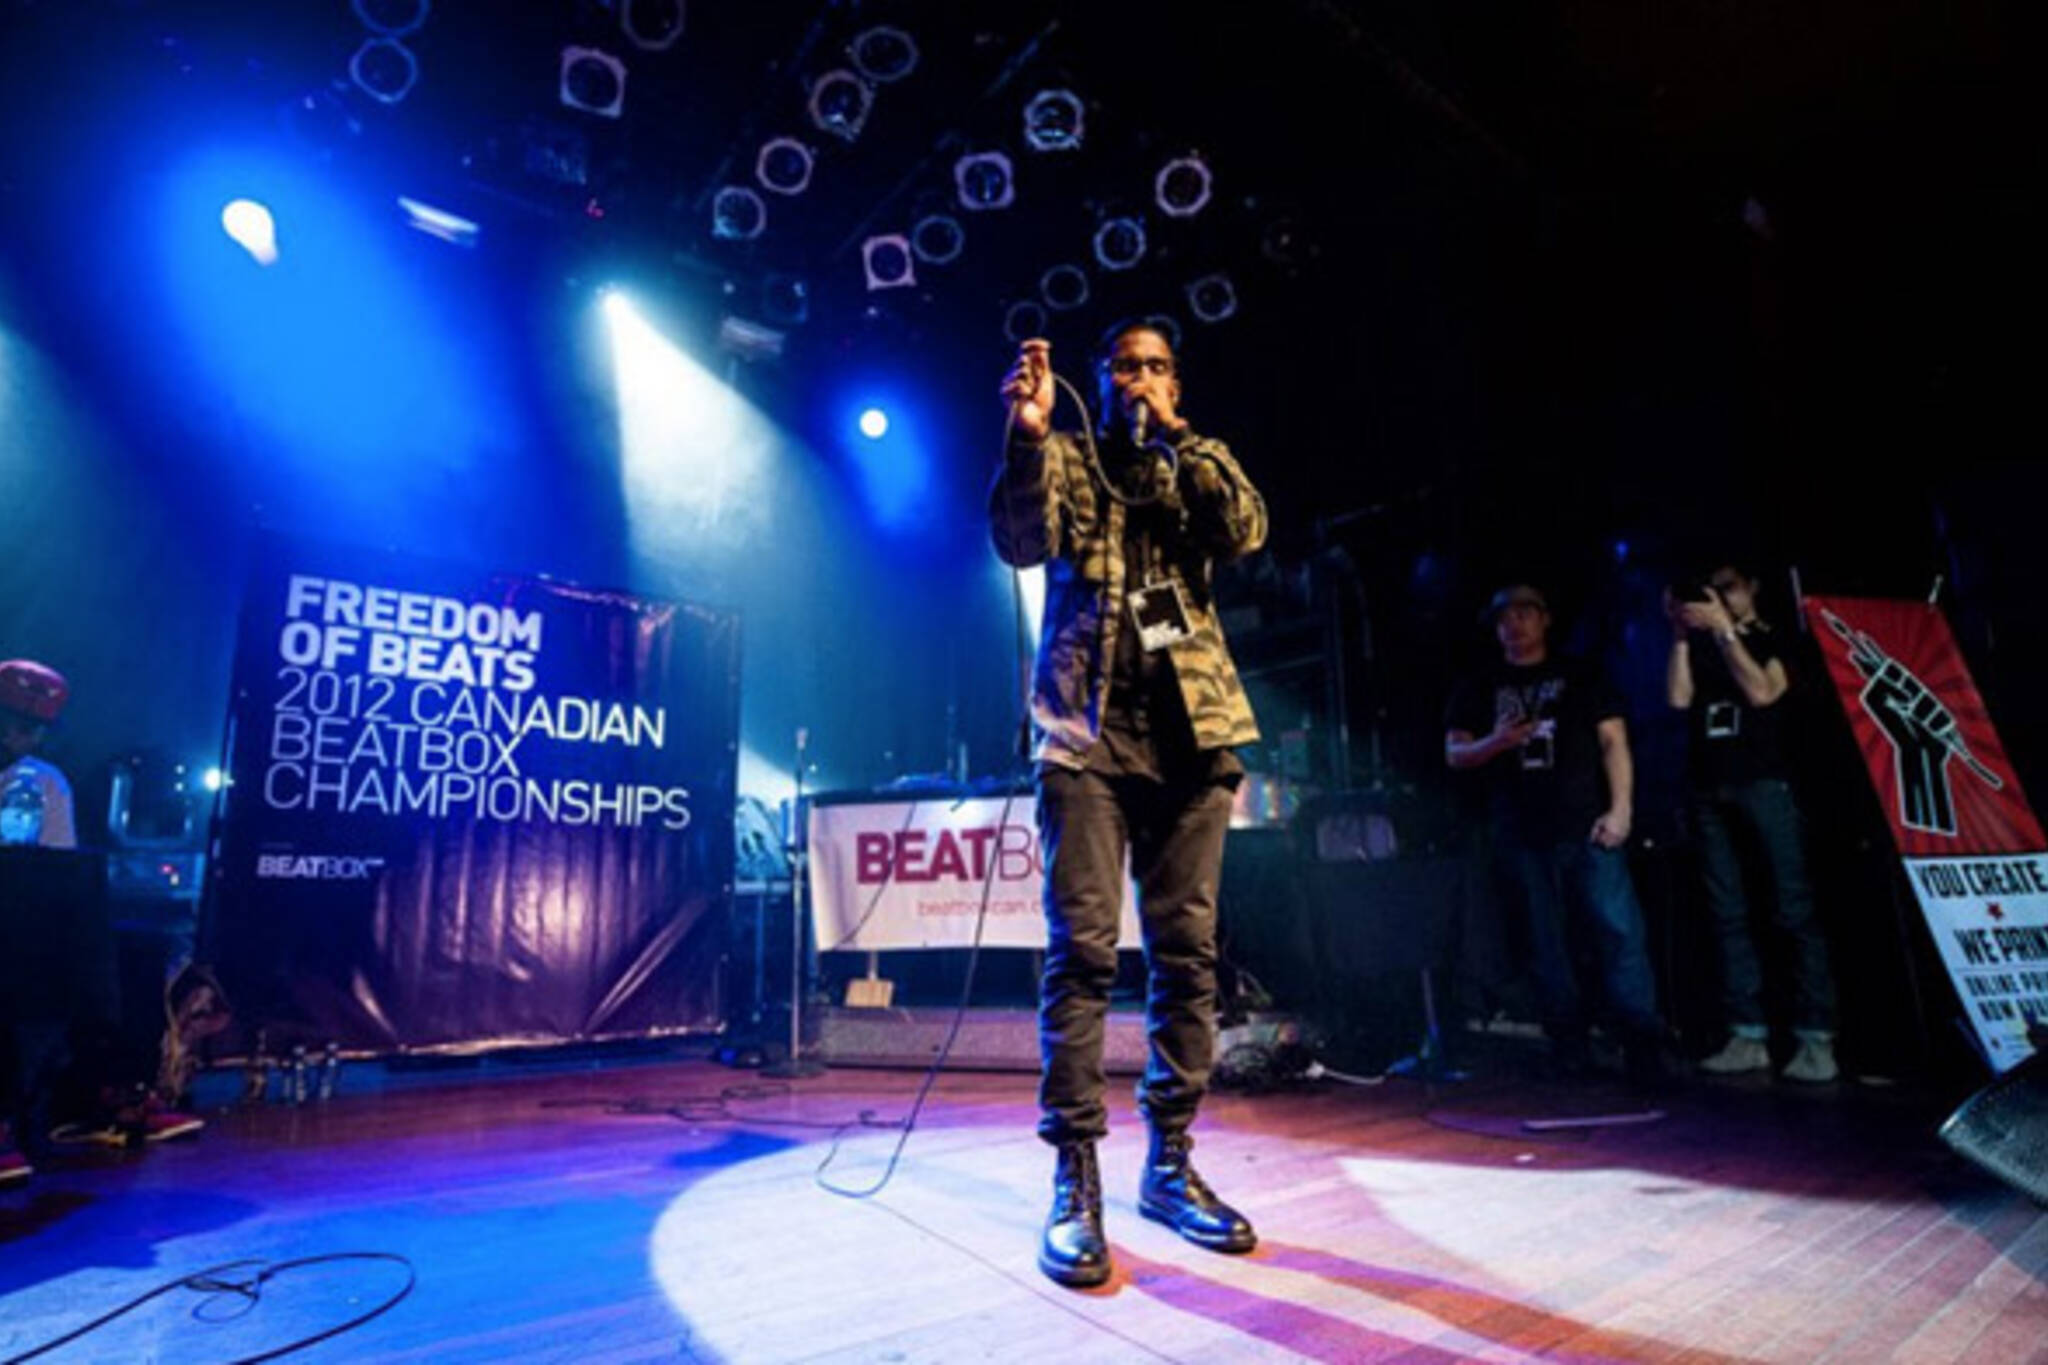 Canadian Beatbox Championships